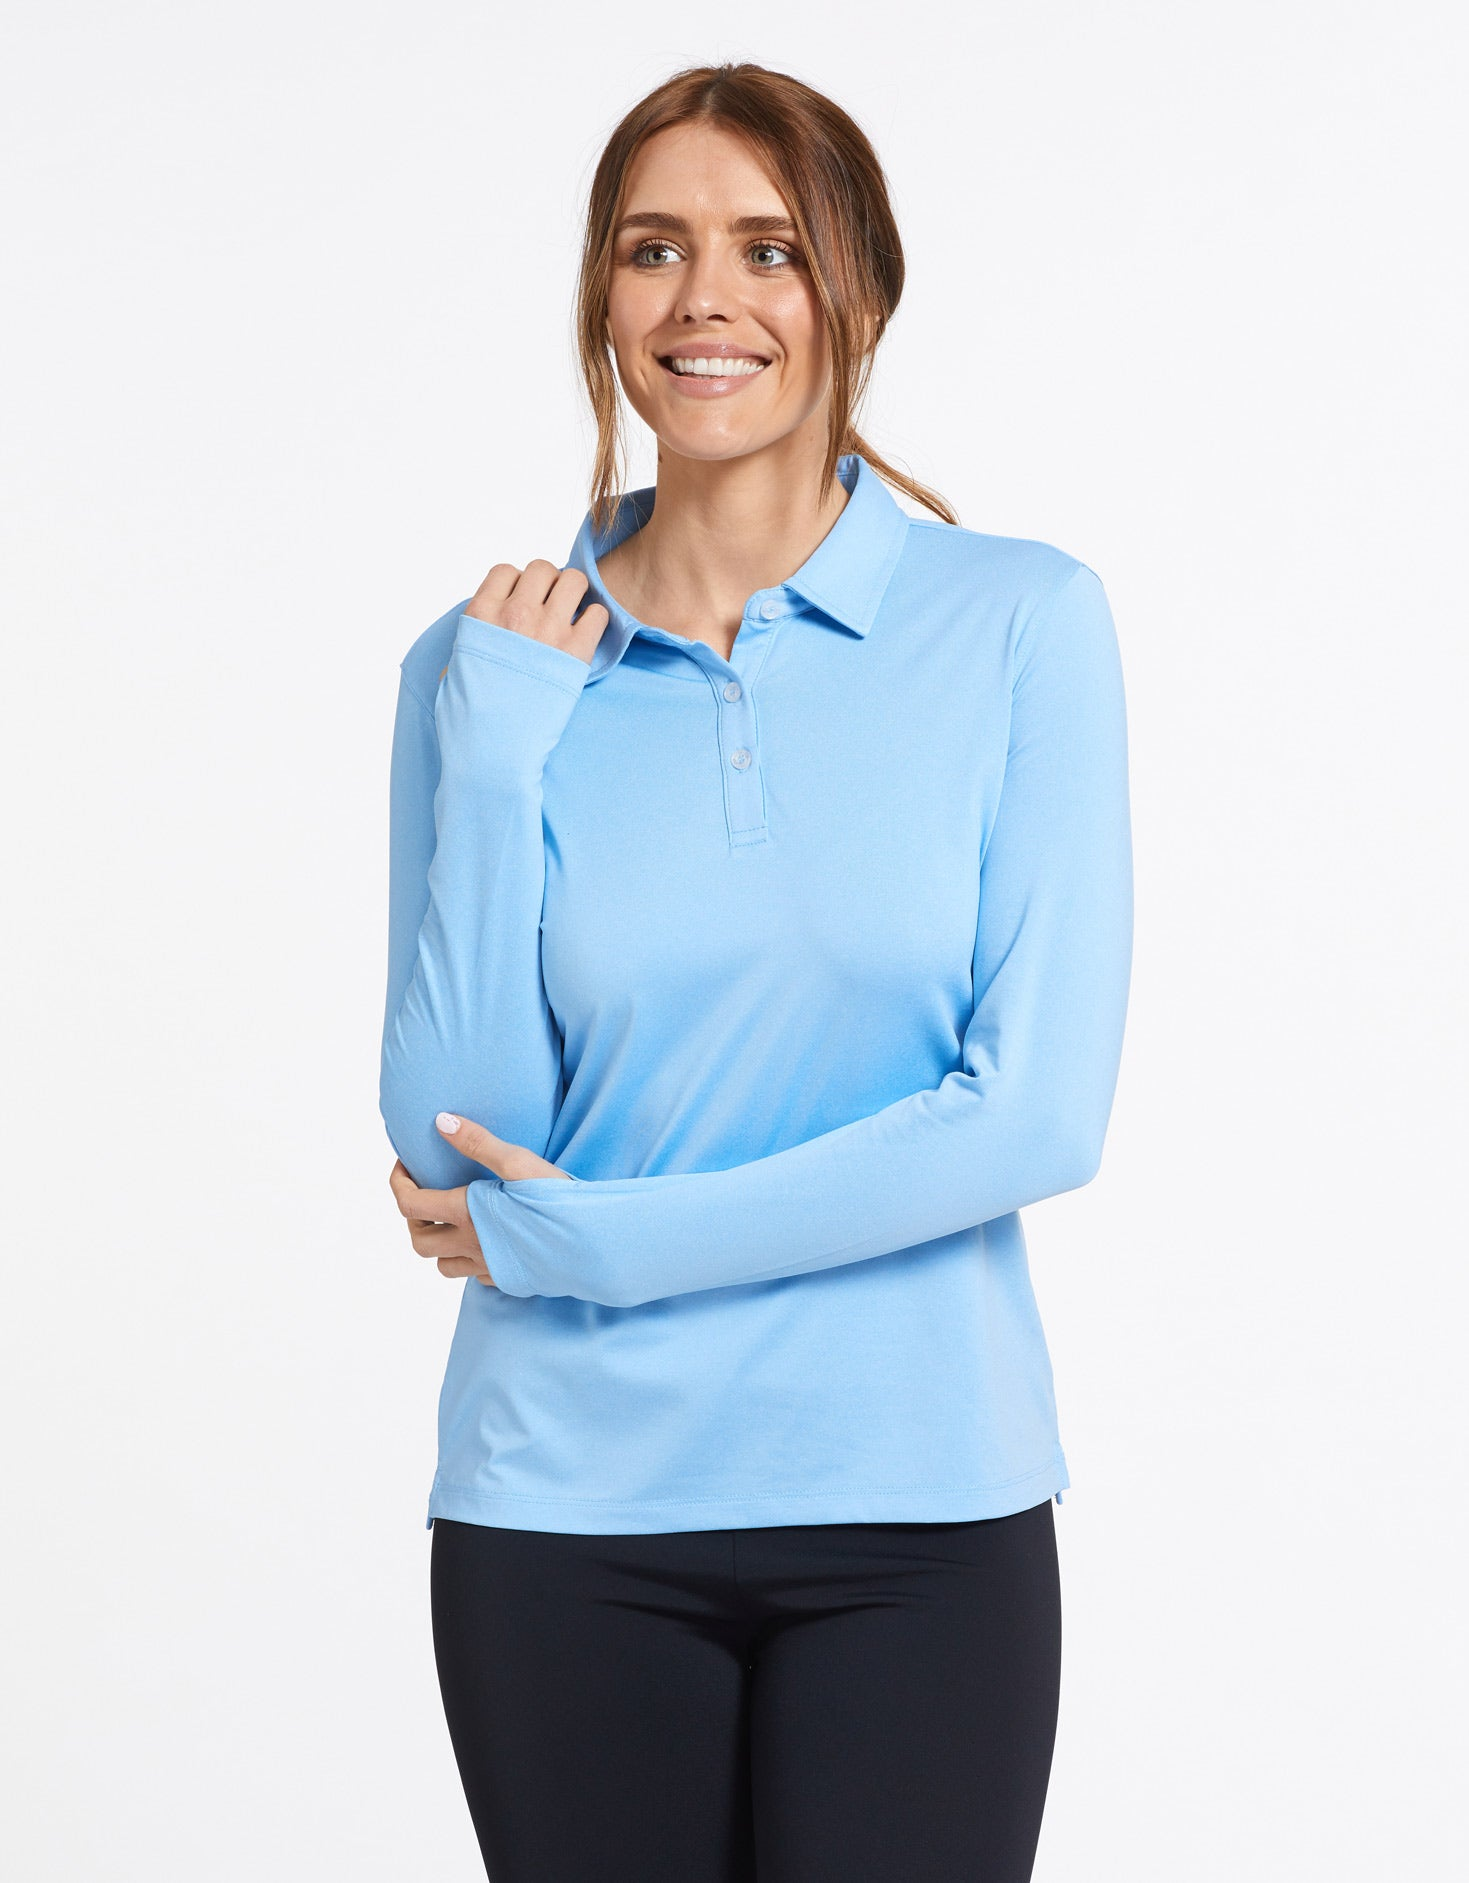 Ladies Long Sleeved Stretch Poloshirt WRAPSF Women